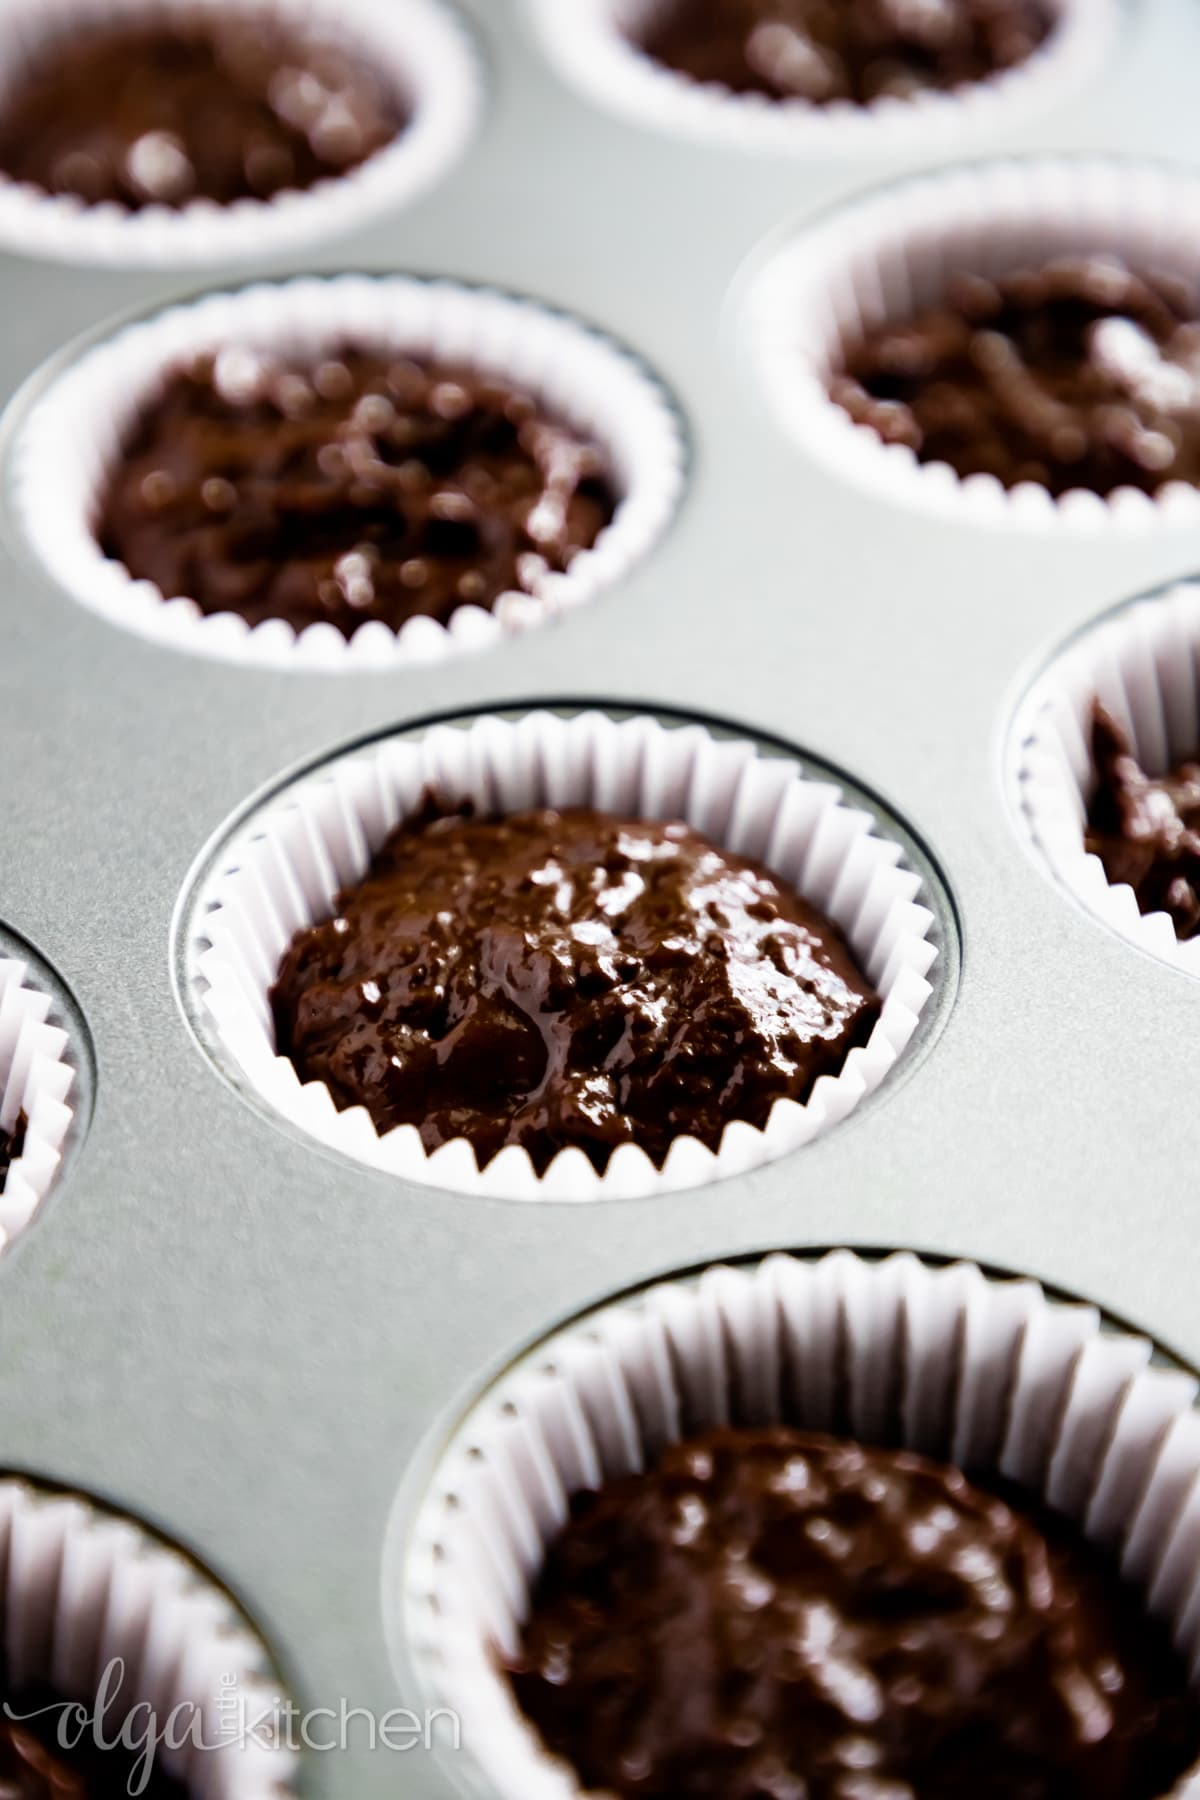 Fill muffin liners with batter for Chocolate Banana Muffins.